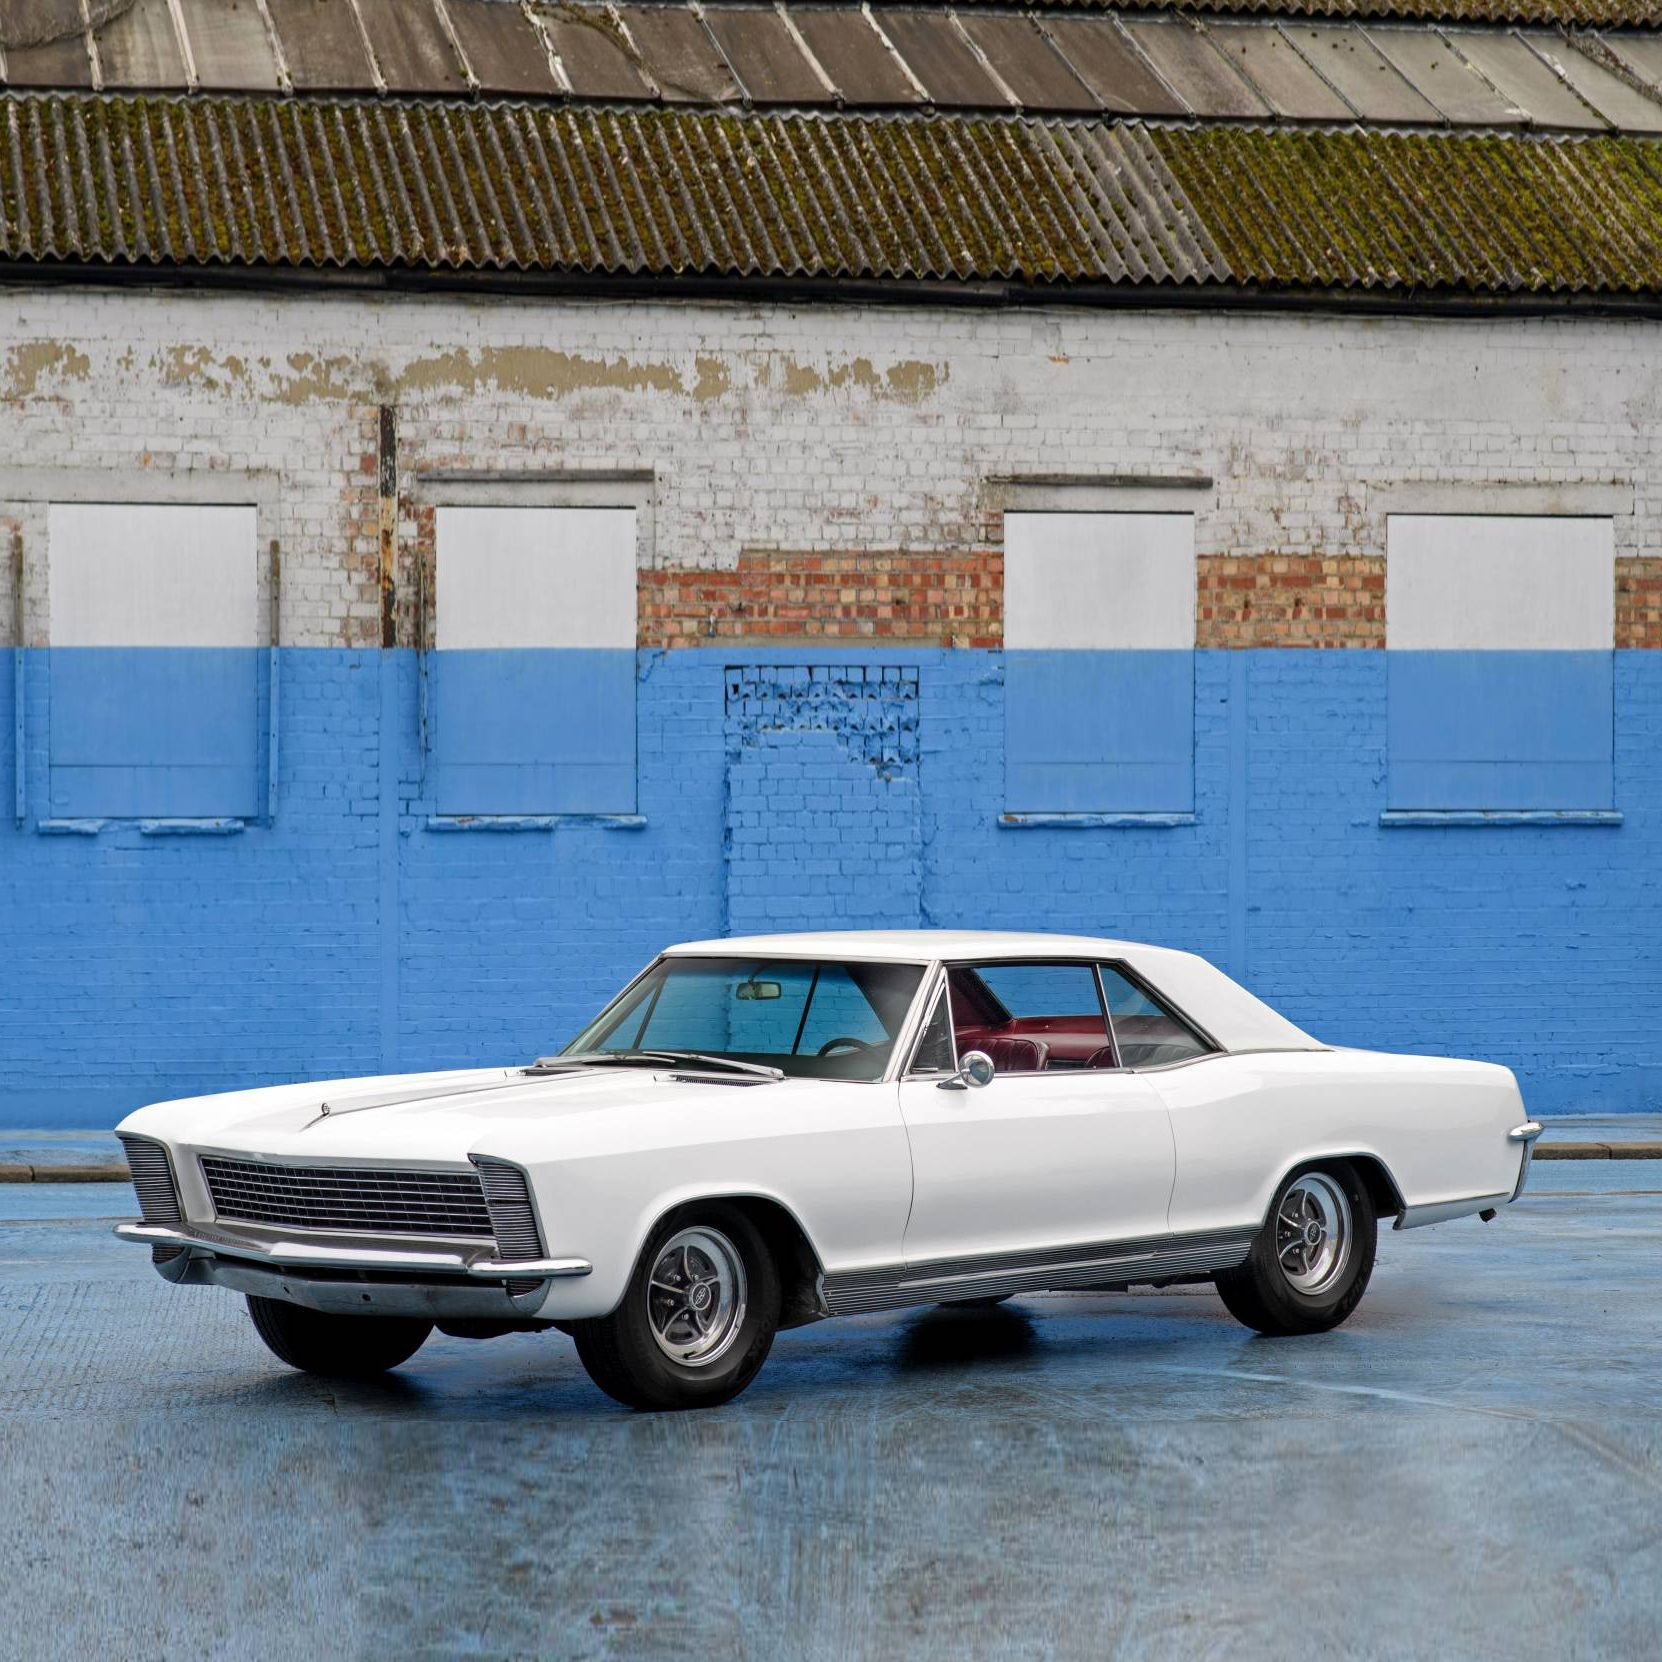 Check Out The Duke S Buick A Charming 1965 Buick Riviera Coupe Featuring A Stylish Headlight Design And Its Original 401 Nailhead V8 Engine Comes Finished I In 2020